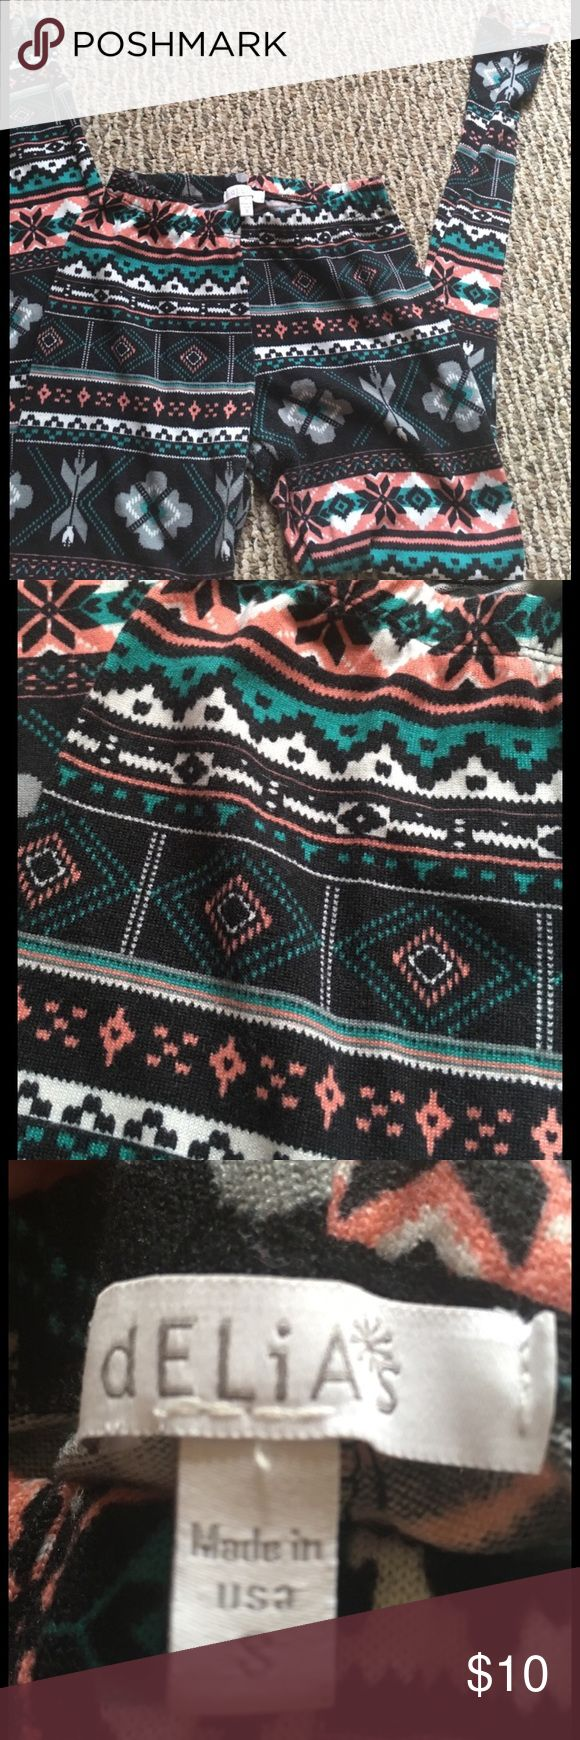 Tribal Print Leggings These patterned leggings are so comfy. The material is super soft and it feels like a cloud. The prints will compliment you in every way and so will the colors on these bad boys. delias Pants Leggings